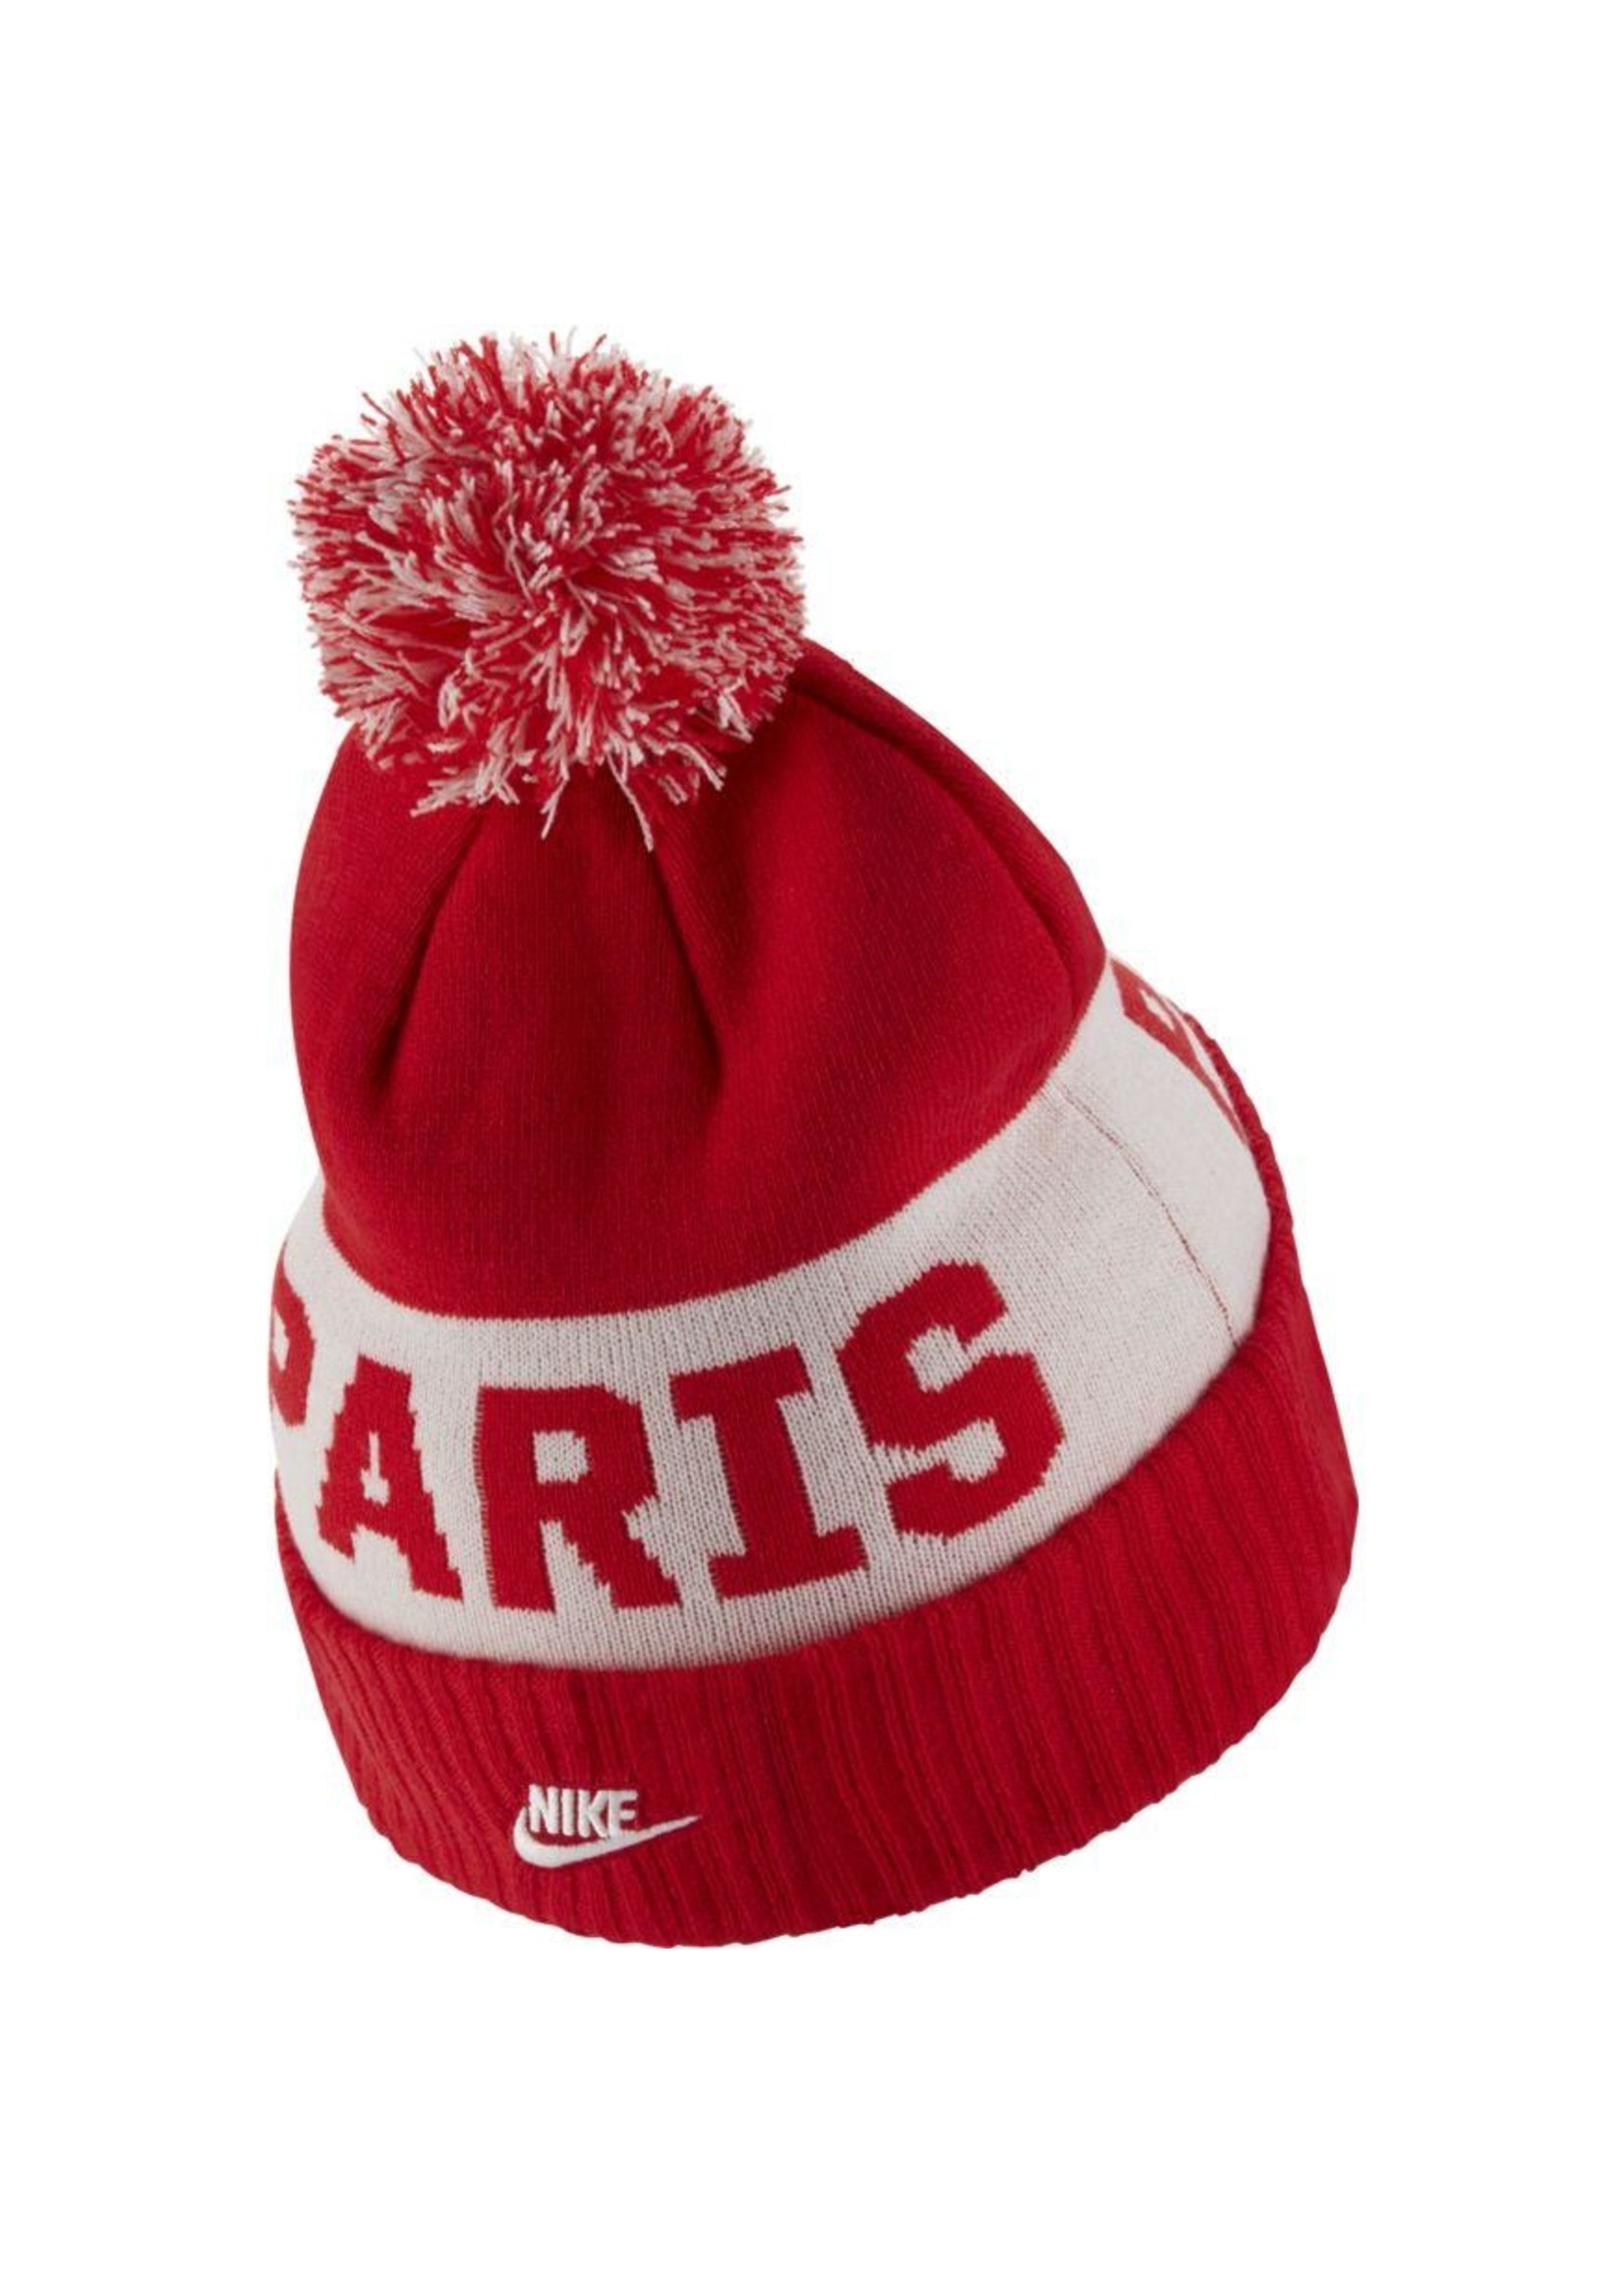 Nike Paris Saint-Germain Beanie - Pom